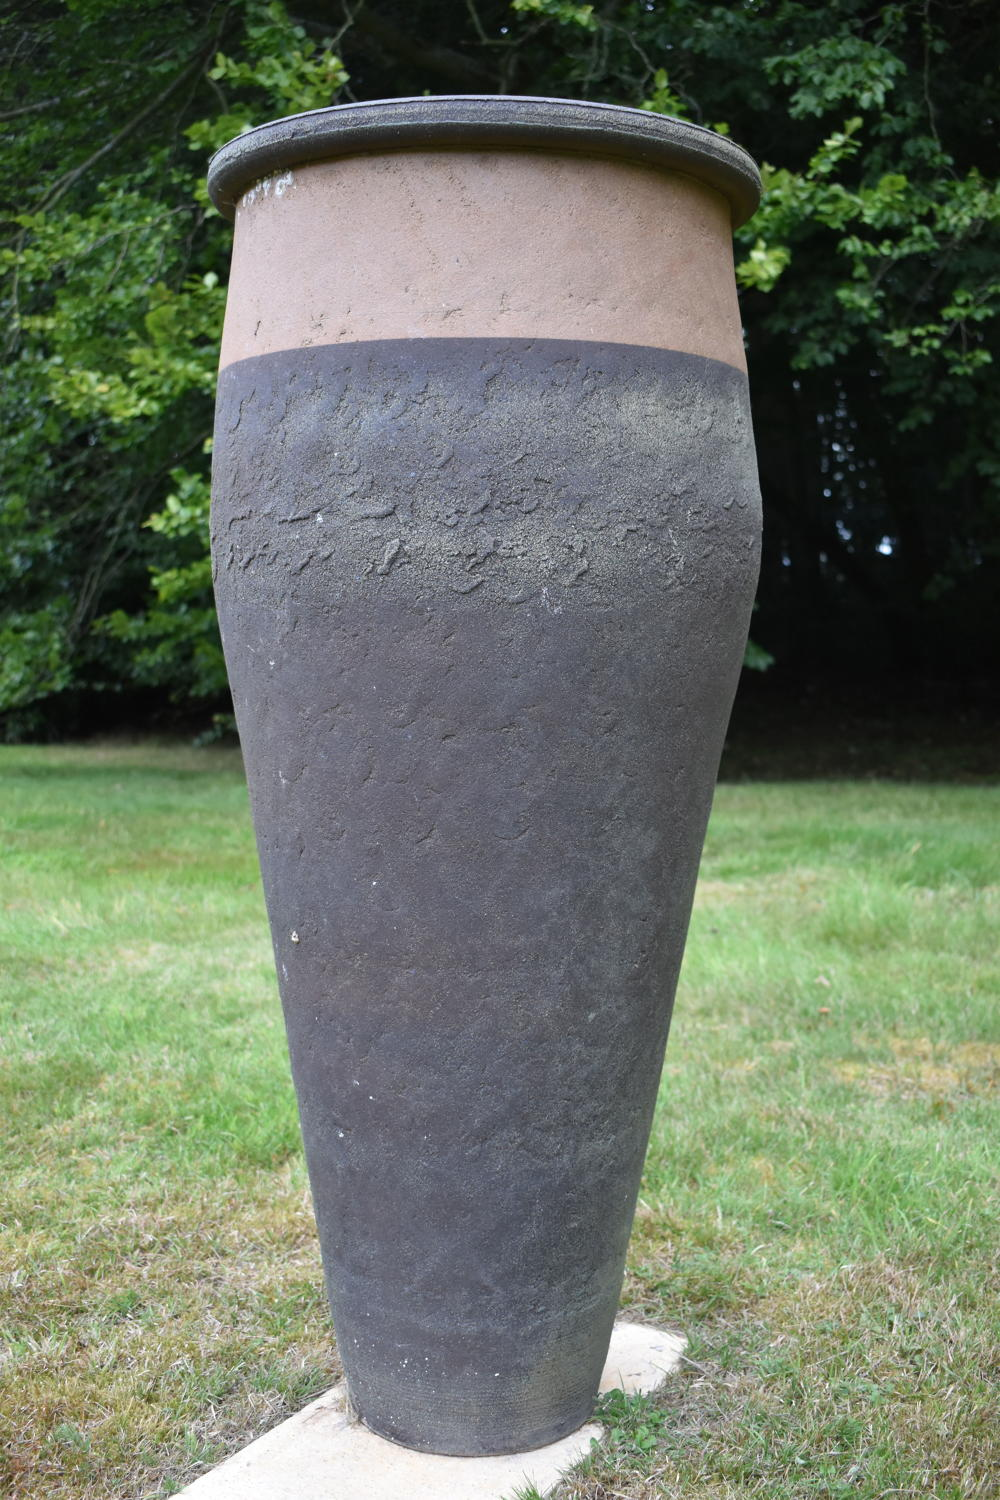 Ellipse ceramic pot by Philip Simmonds 120 cm